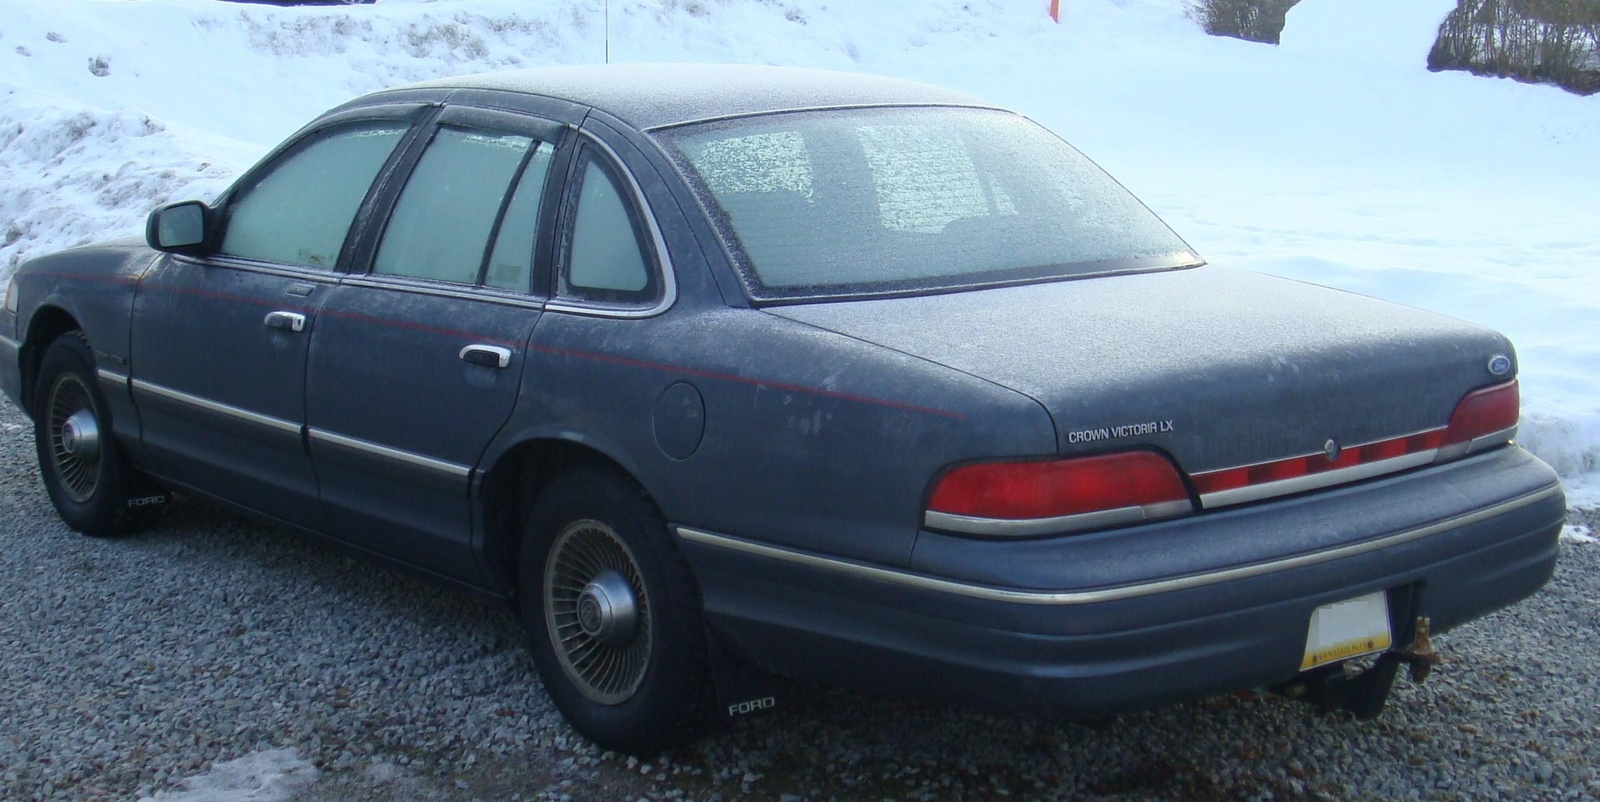 Image result for 1993 crown vic